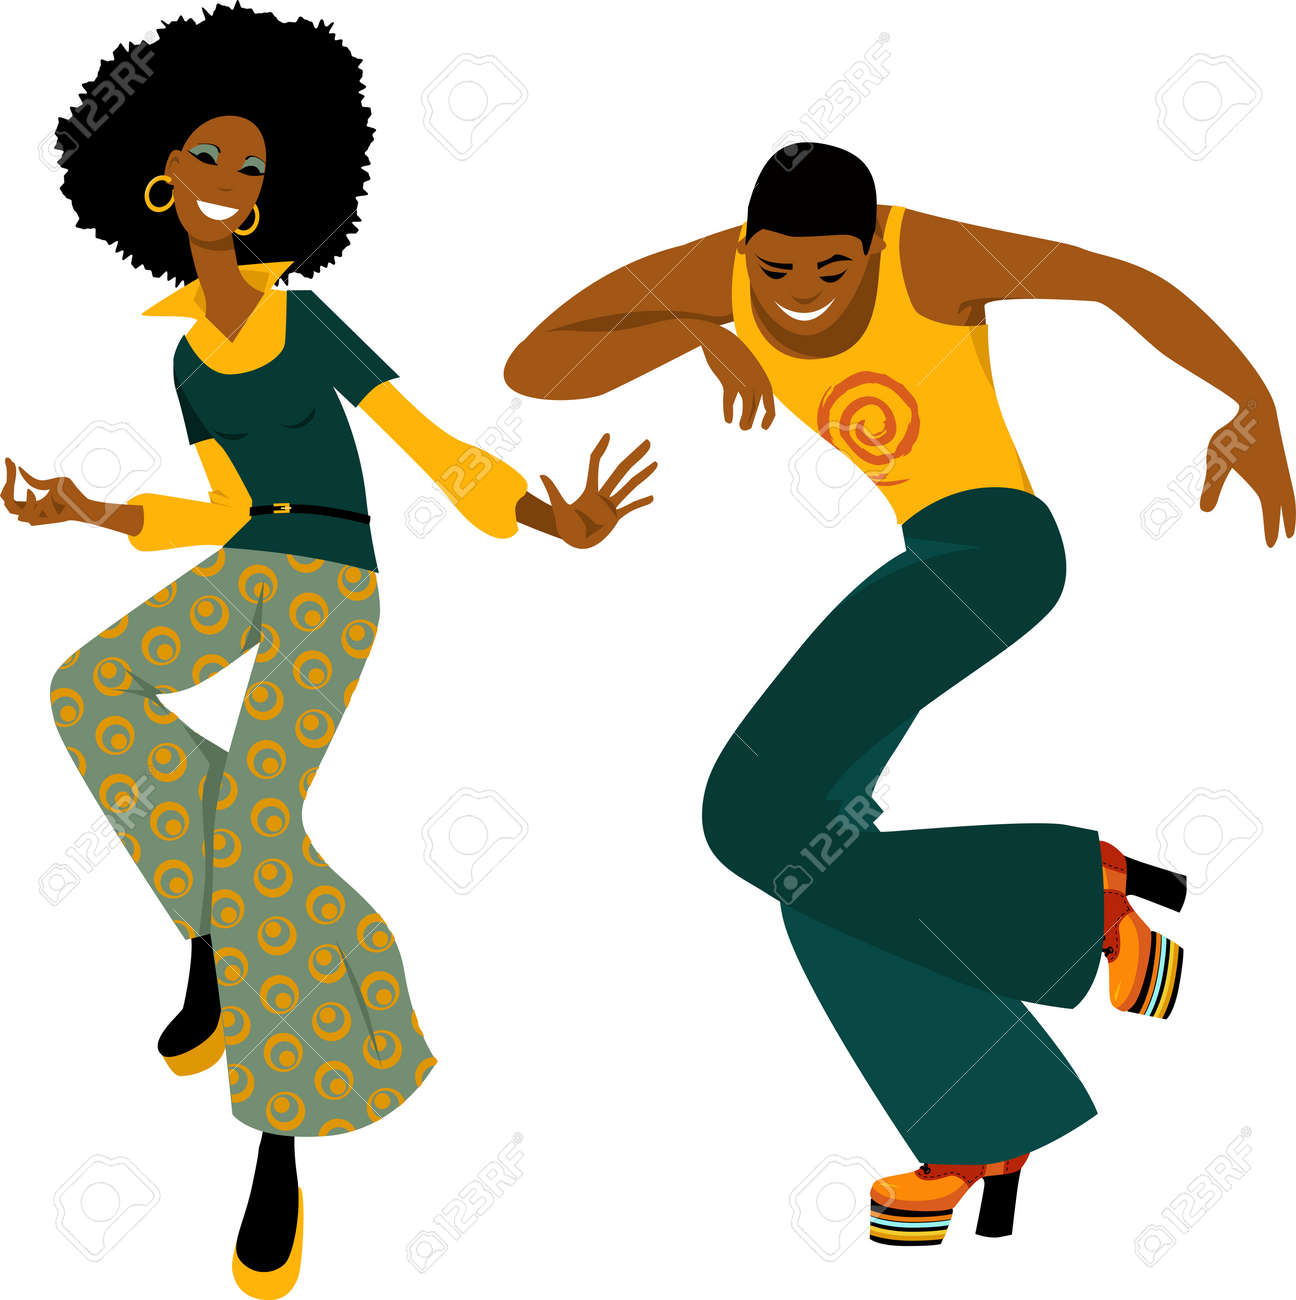 Young couple dressed in 1970s fashion dancing disco, EPS 8 vector illustration - 93140168